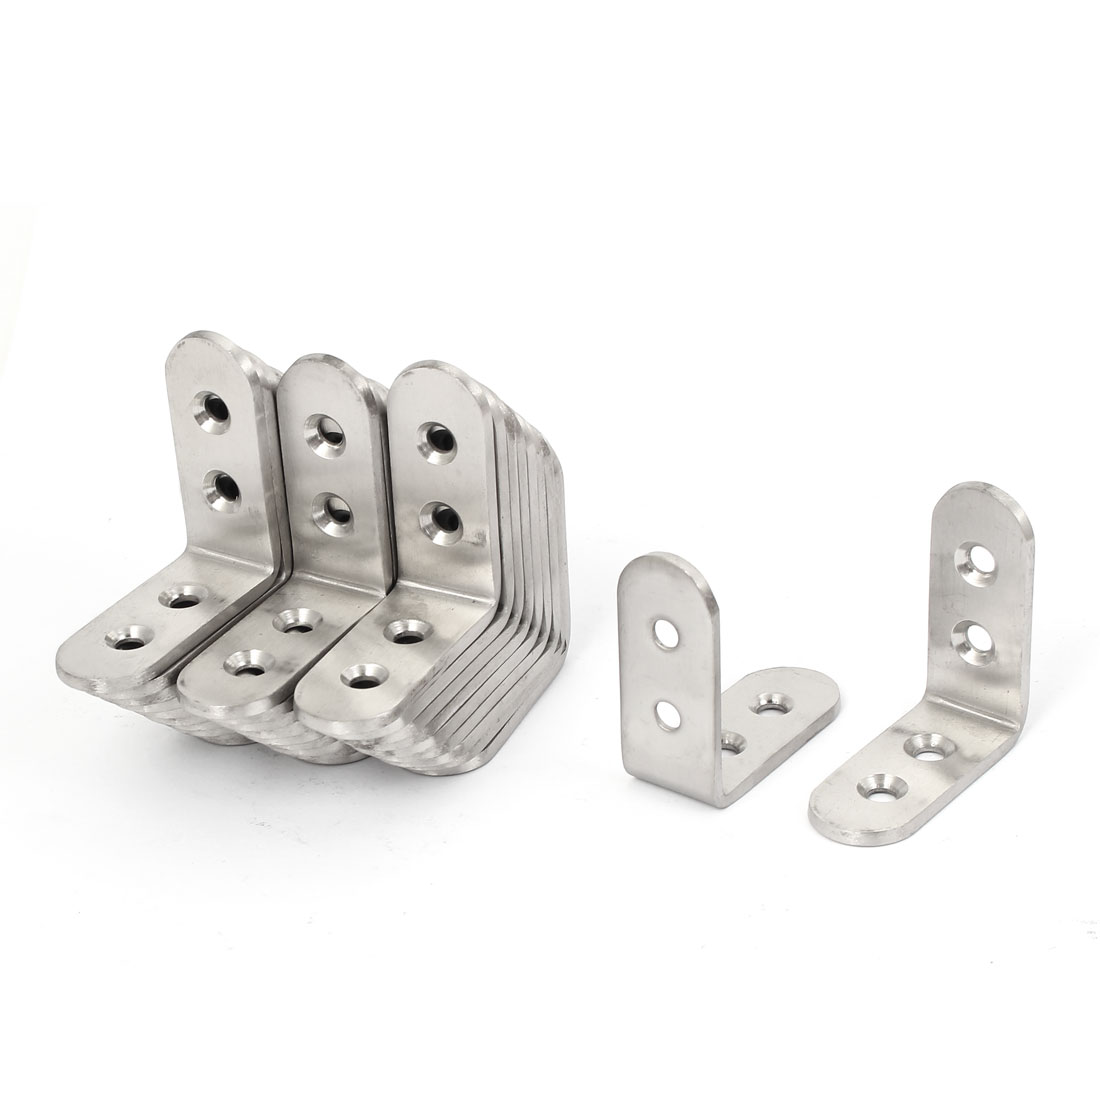 45mmx45mmx3mm Furniture Fittings Right Angle Corner Bracket 30pcs